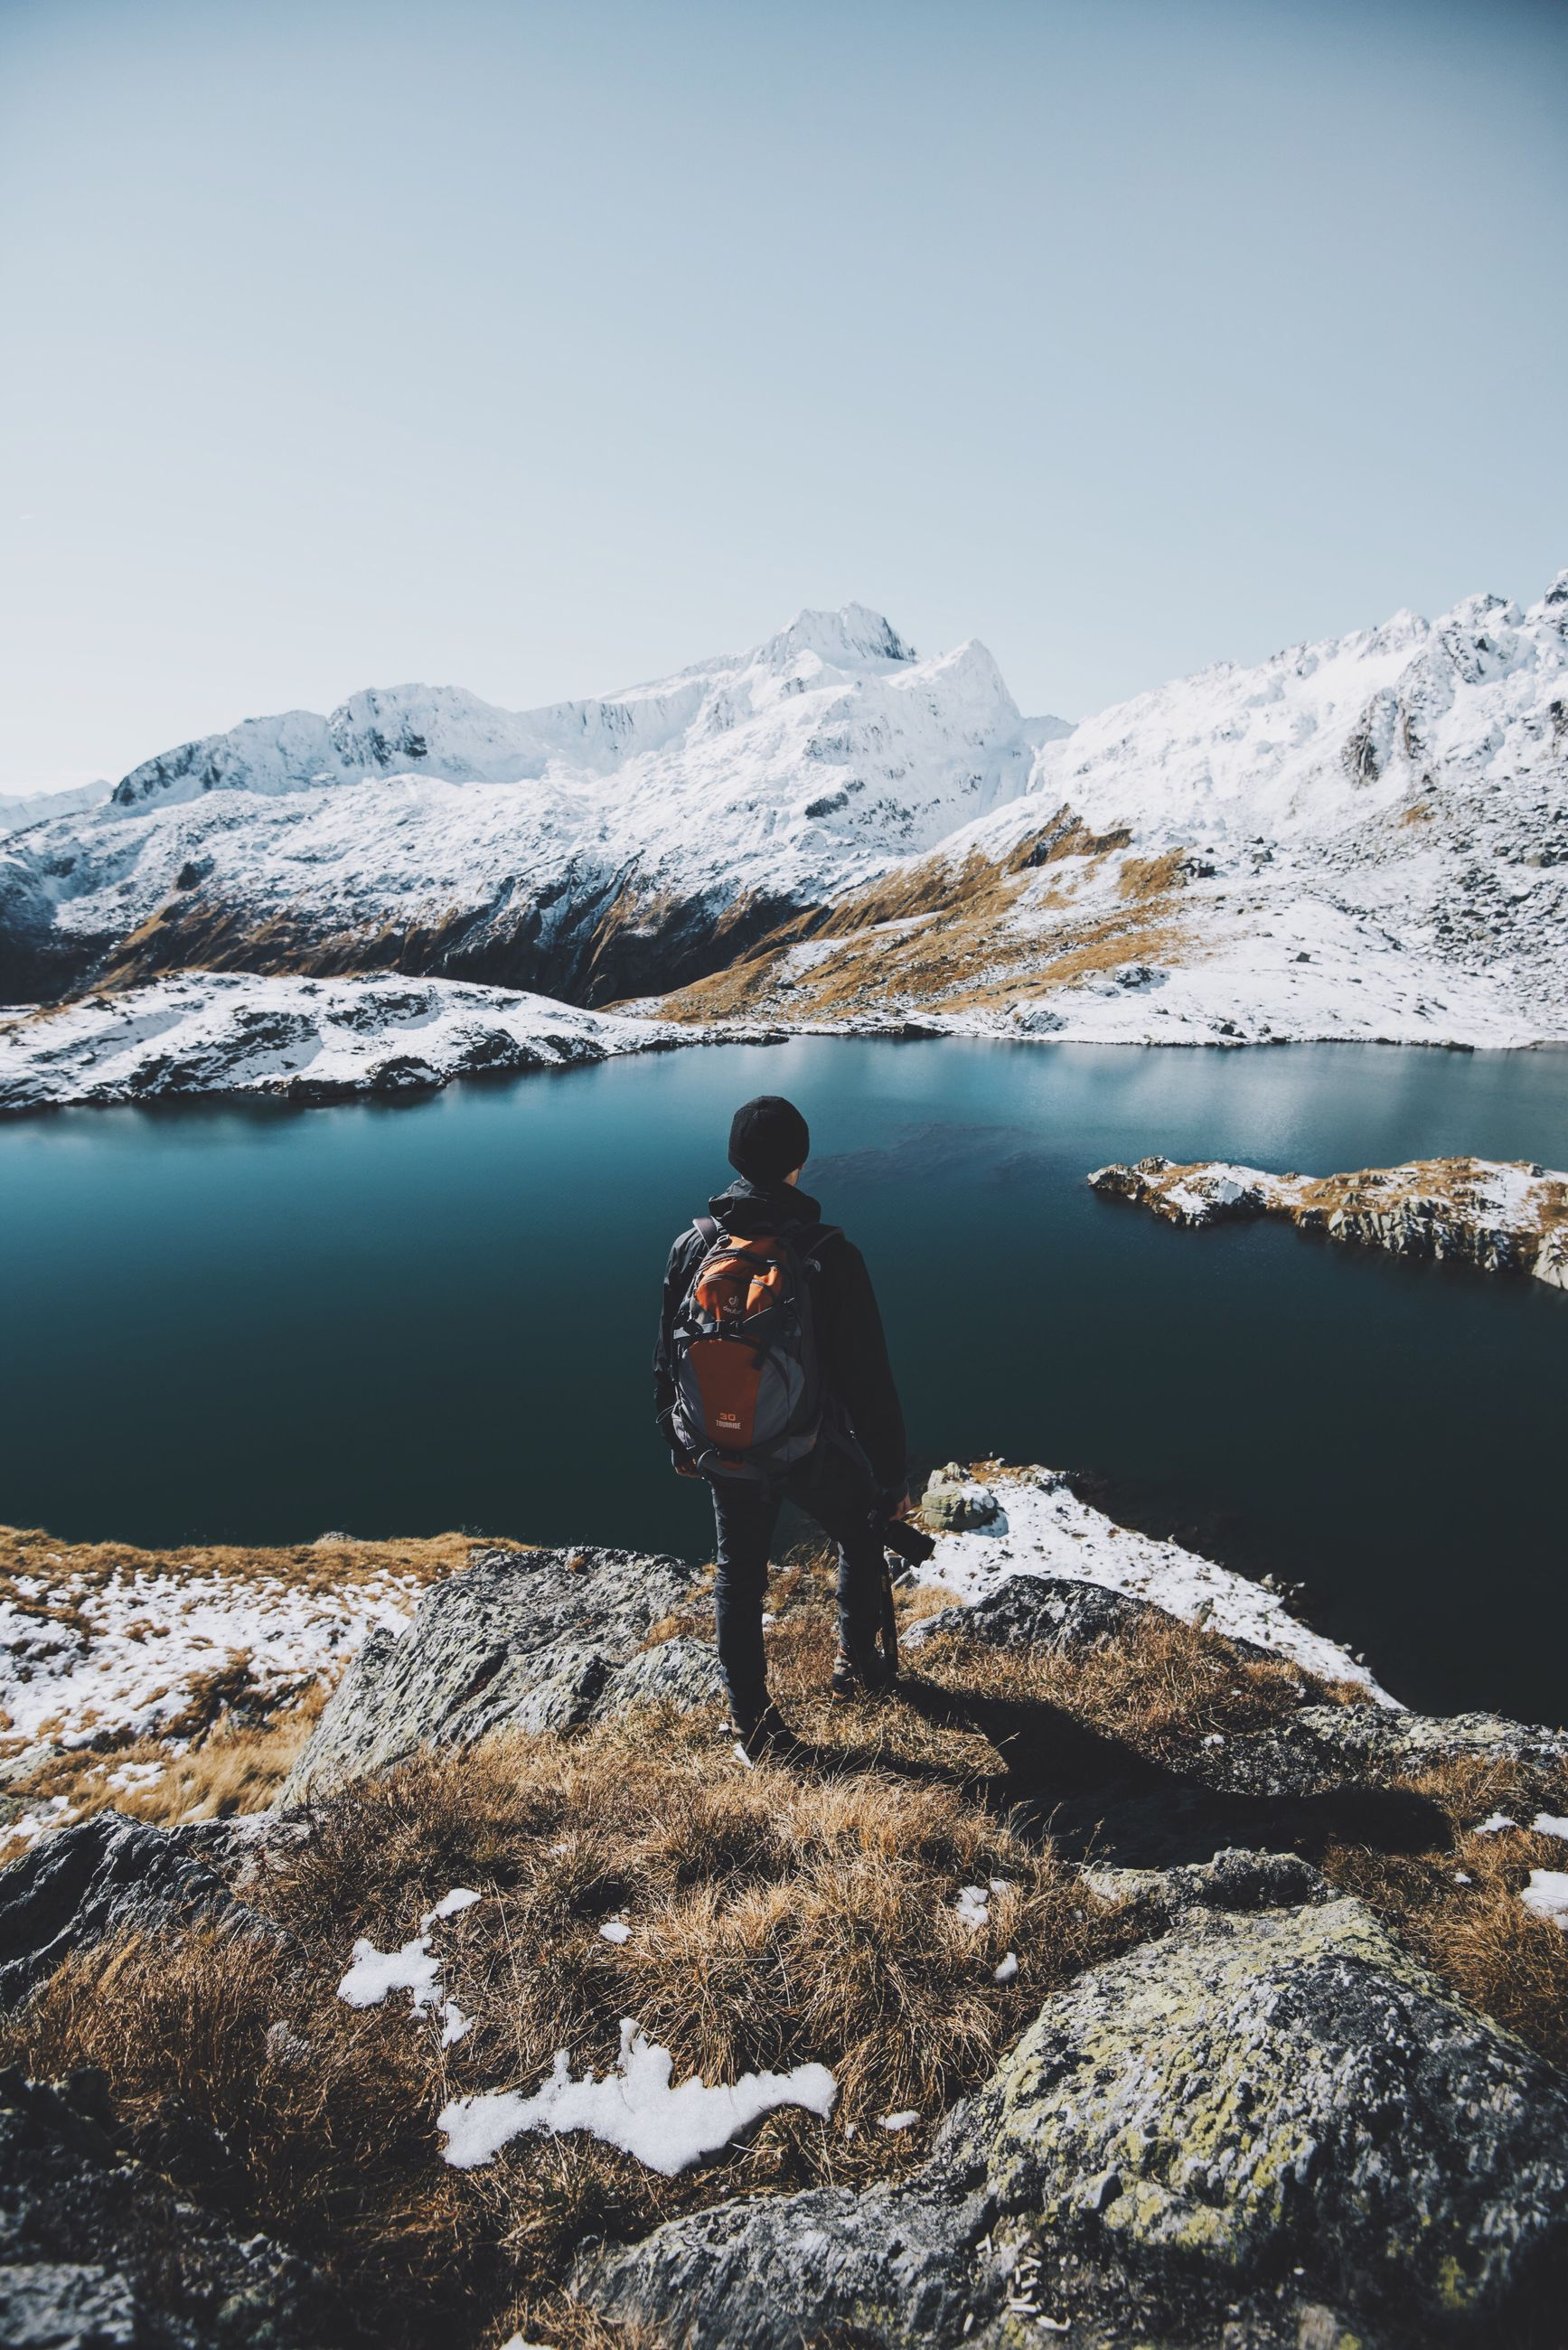 one person, beauty in nature, nature, water, real people, snow, men, leisure activity, cold temperature, mountain, winter, lifestyles, sky, outdoors, scenics, day, mountain range, lake, mammal, people